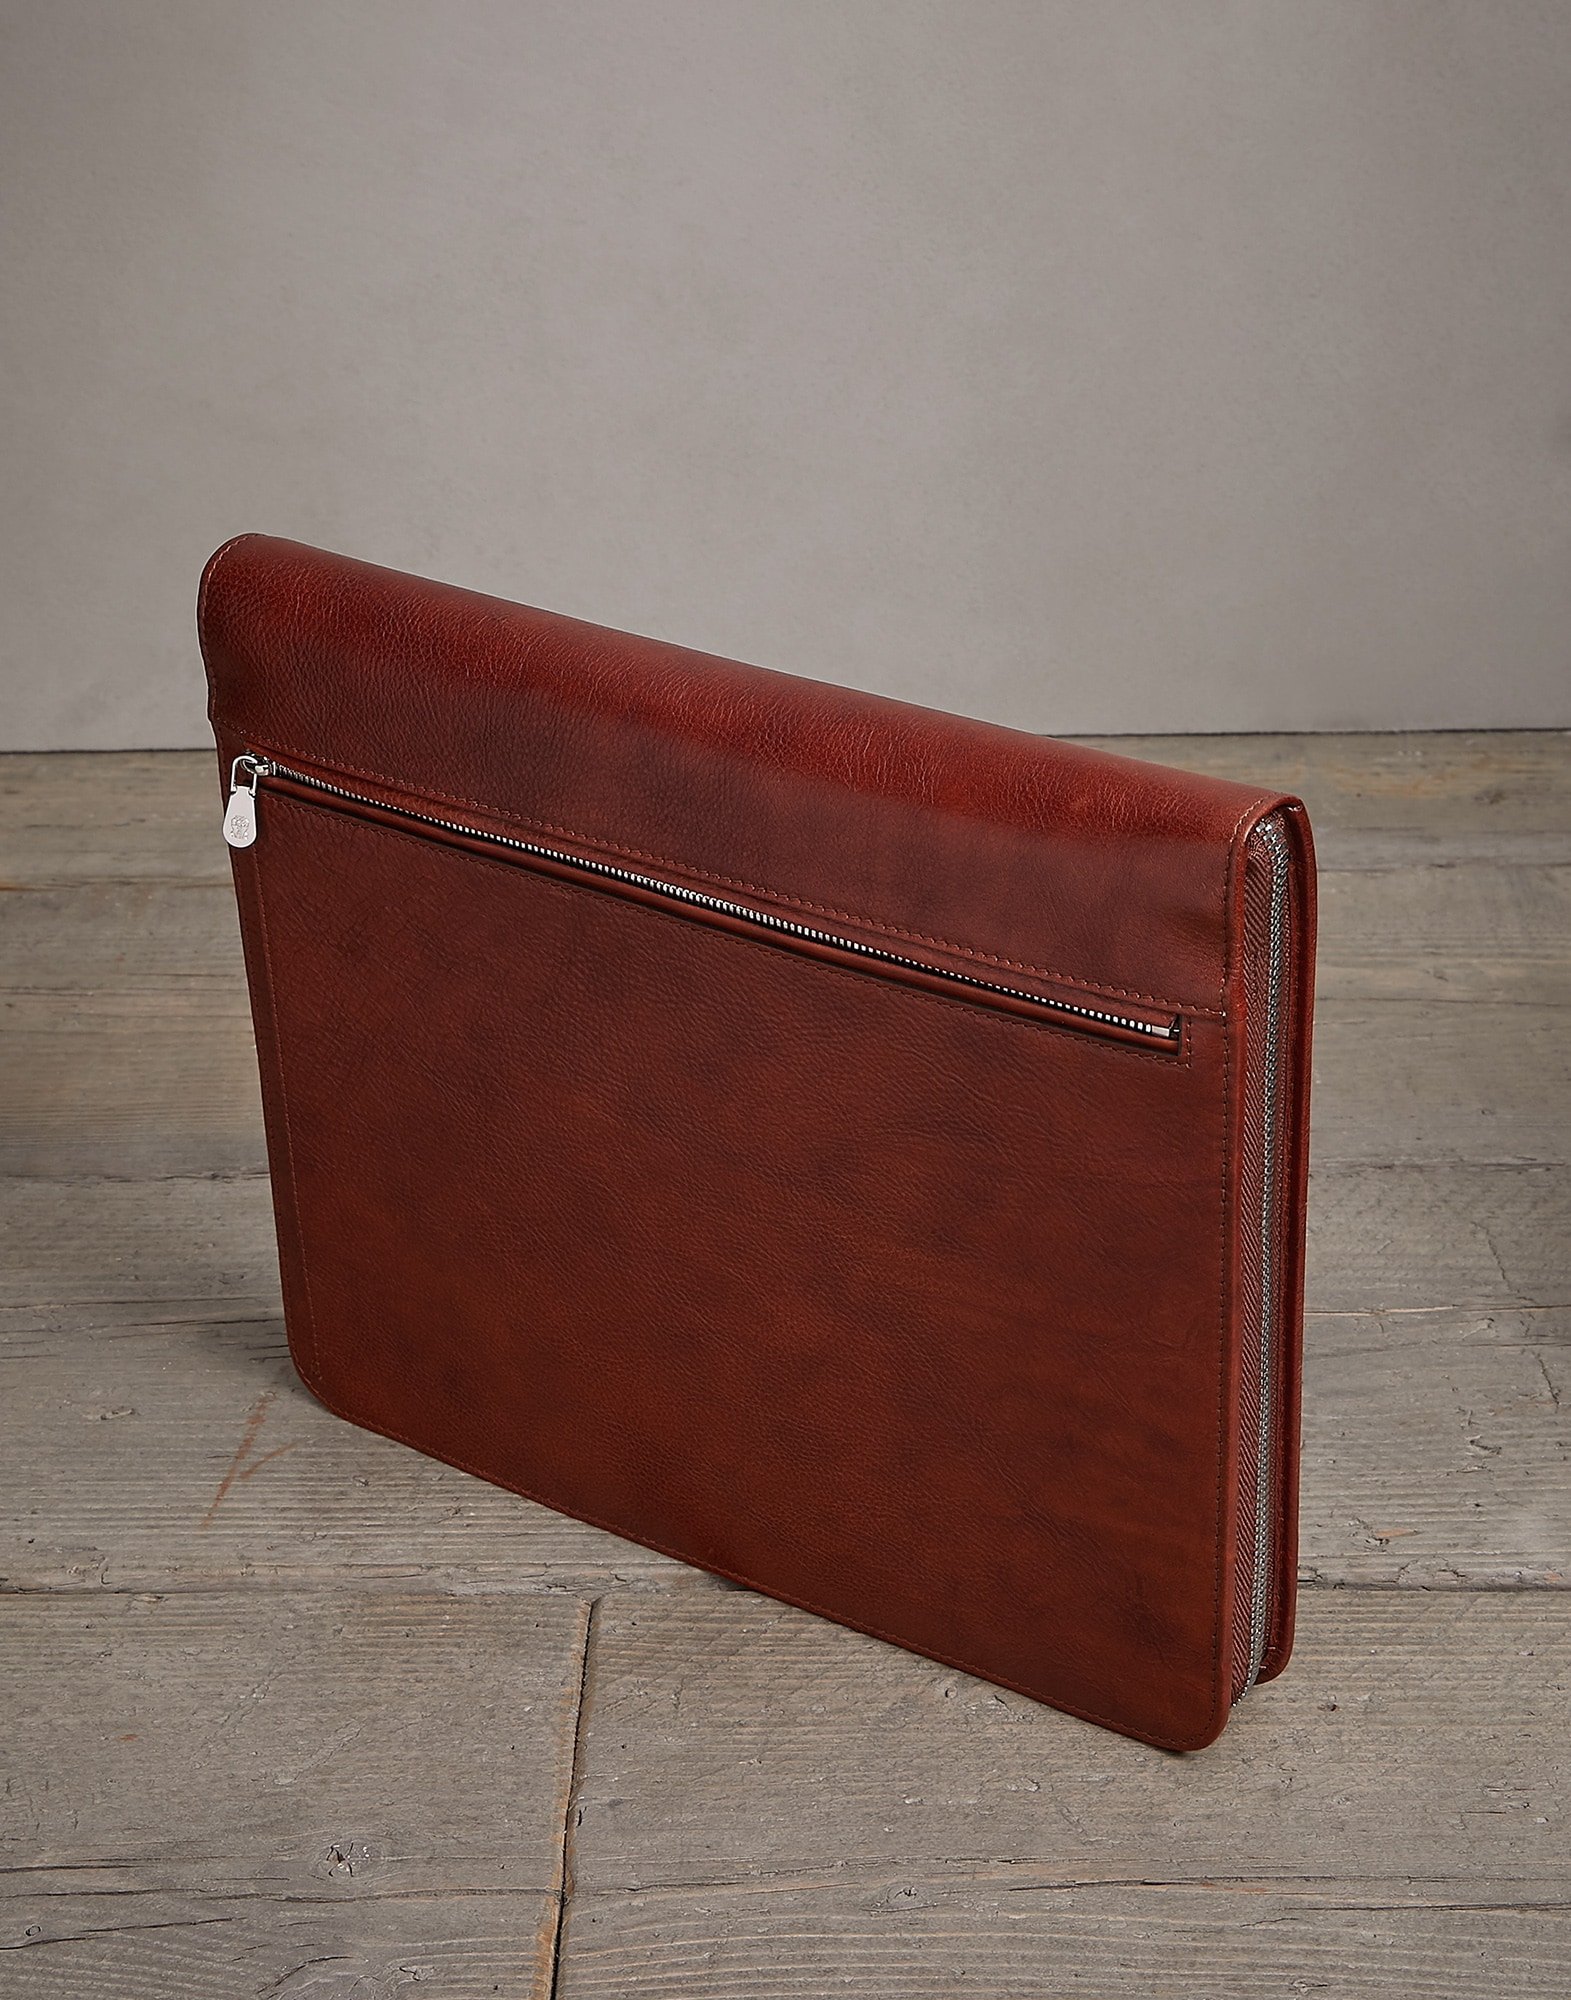 Porte-Documents Cognac Homme 1 - Brunello Cucinelli